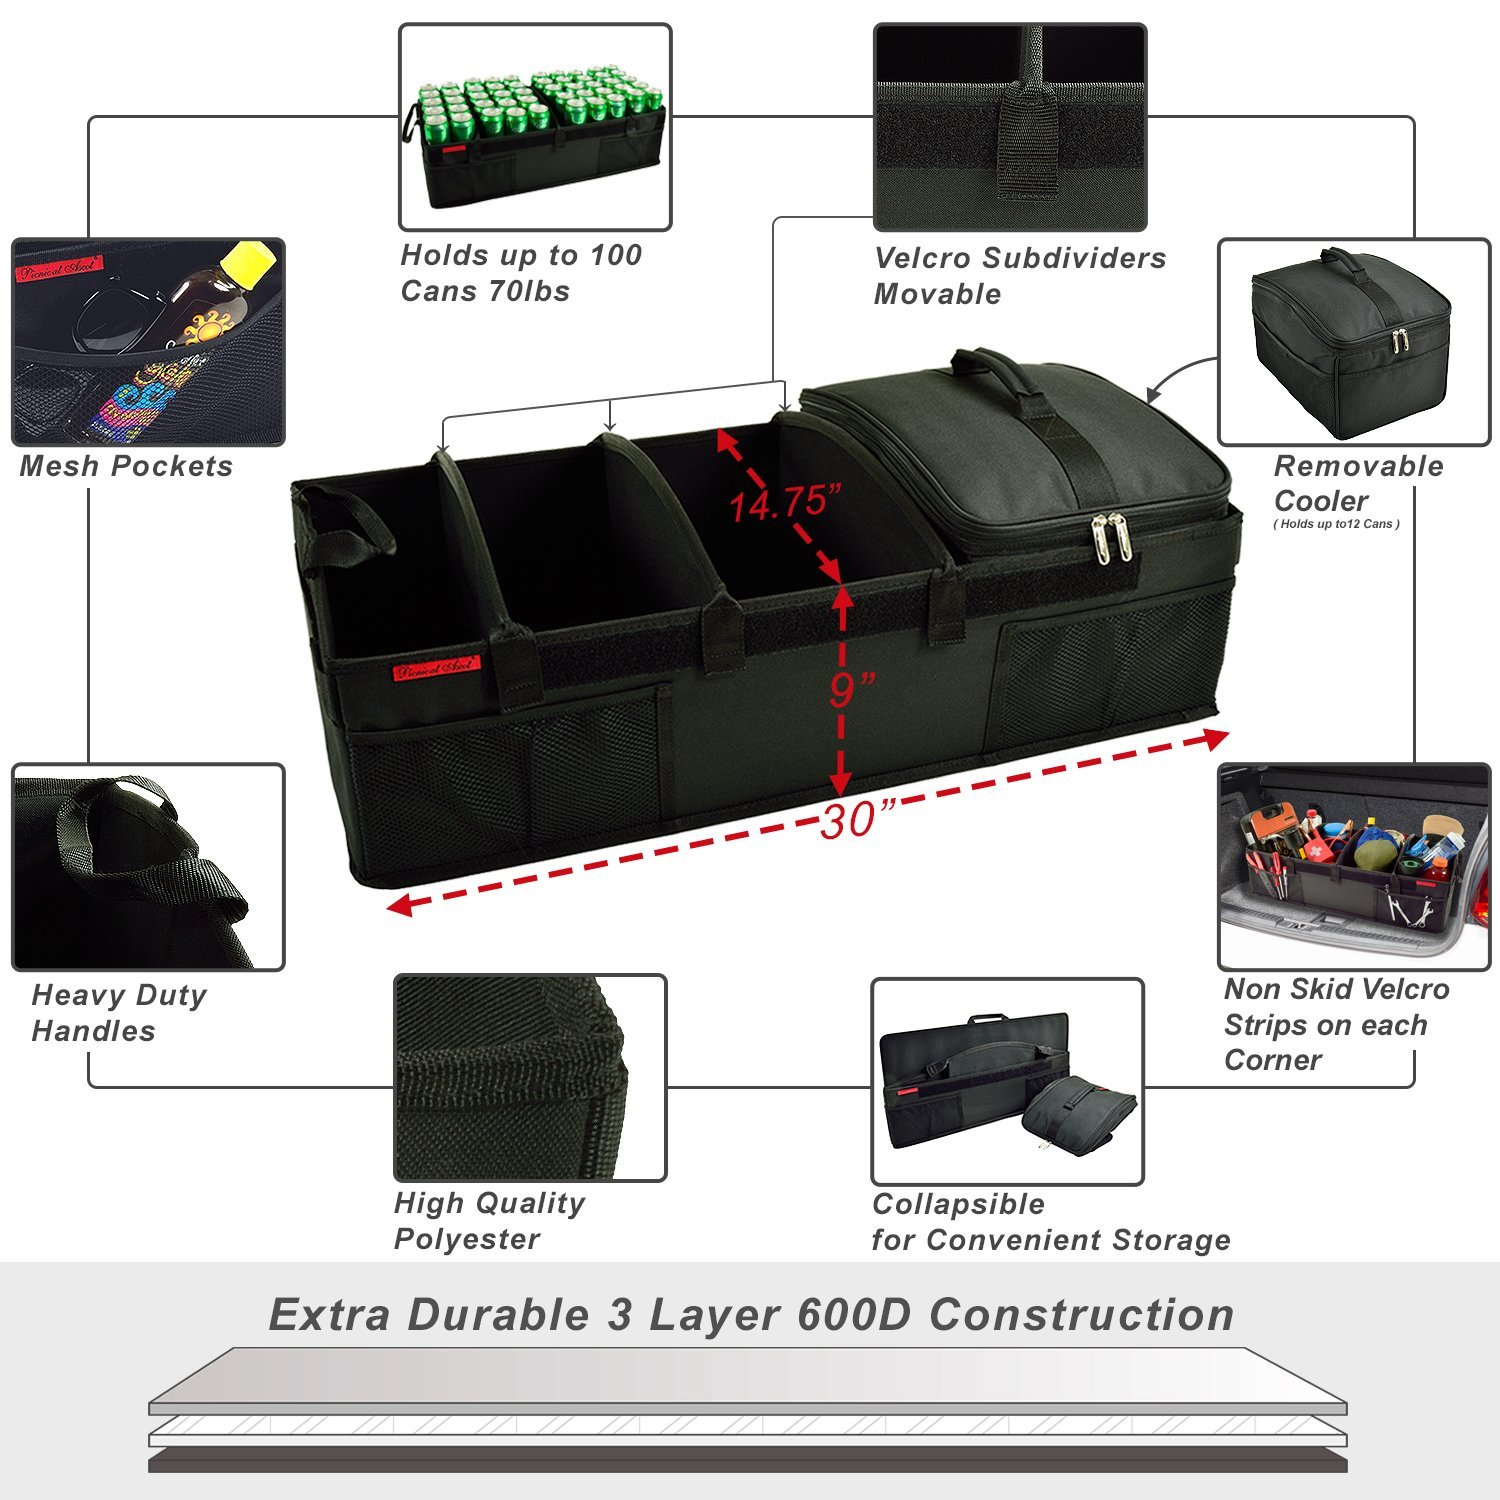 Picnic at Ascot - Ultimate Heavy Duty Trunk Organizer w/Cooler - No Slide Rigid Base -70 LB Capacity - 30'' Wide x 14.75'' deep x 9'' high - Black- 2 Pack by Picnic at Ascot (Image #3)